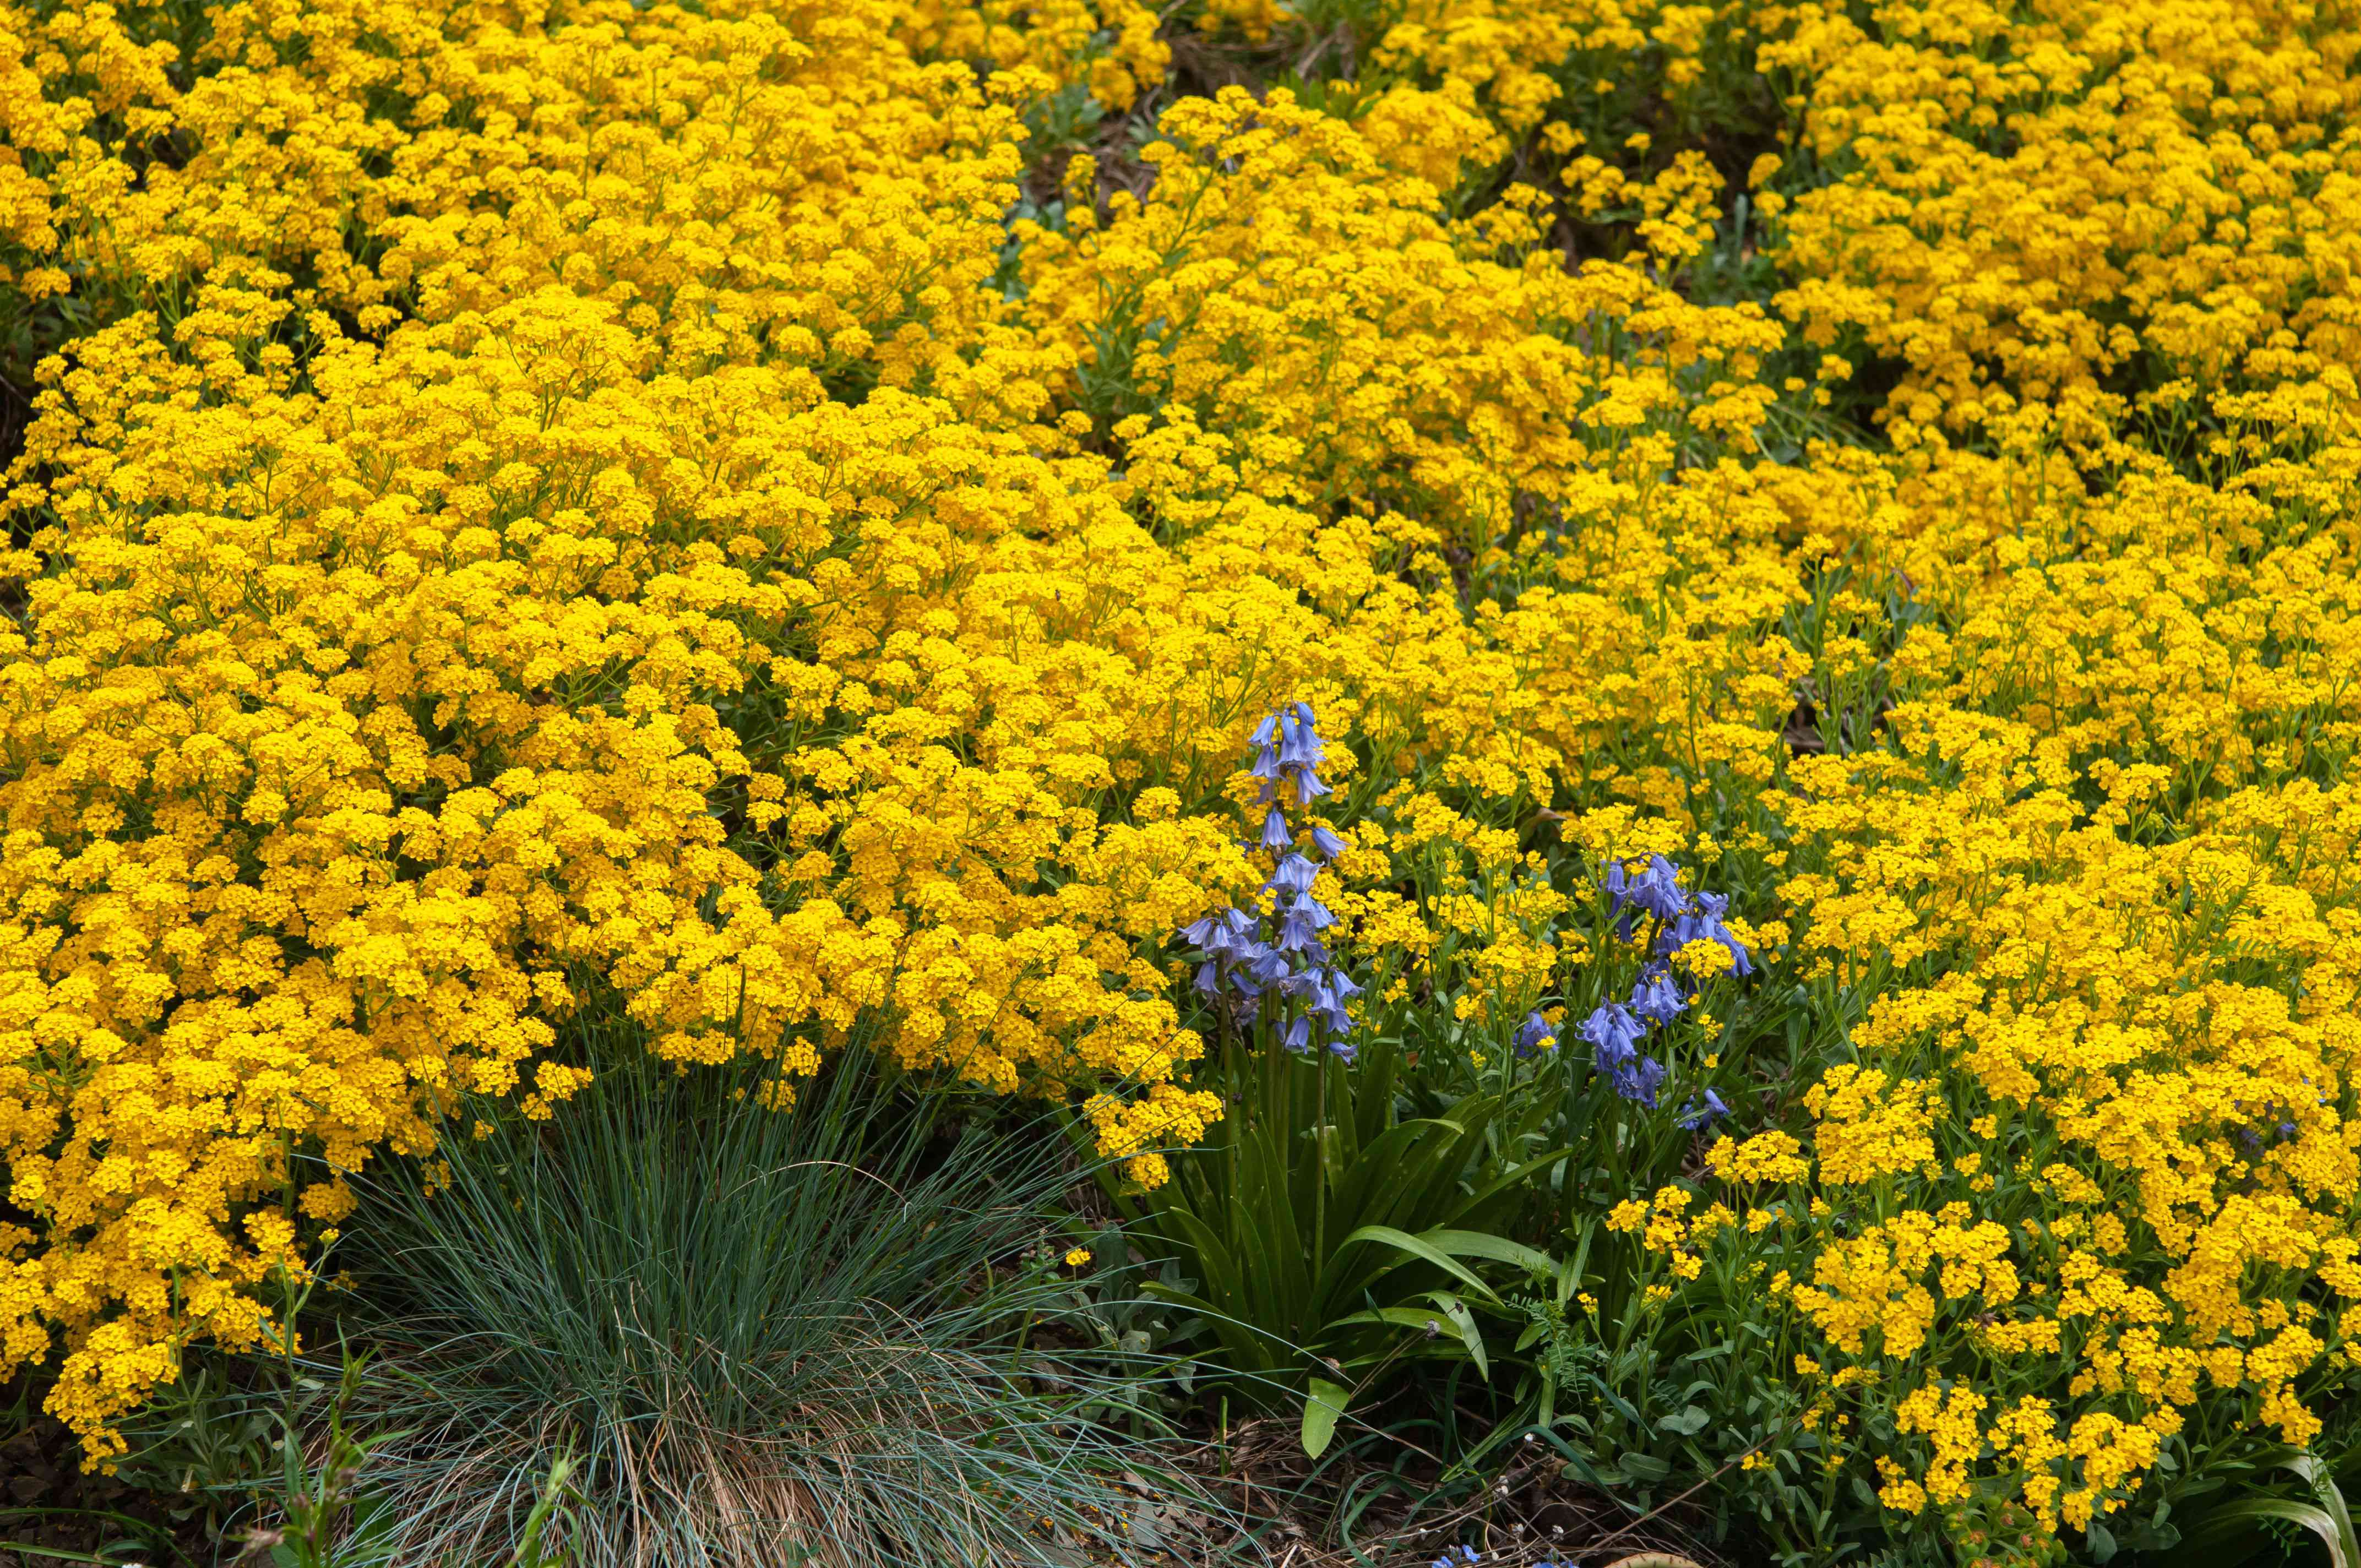 Yellow alyssum flowers with small yellow petals clustered on end of thin green stems